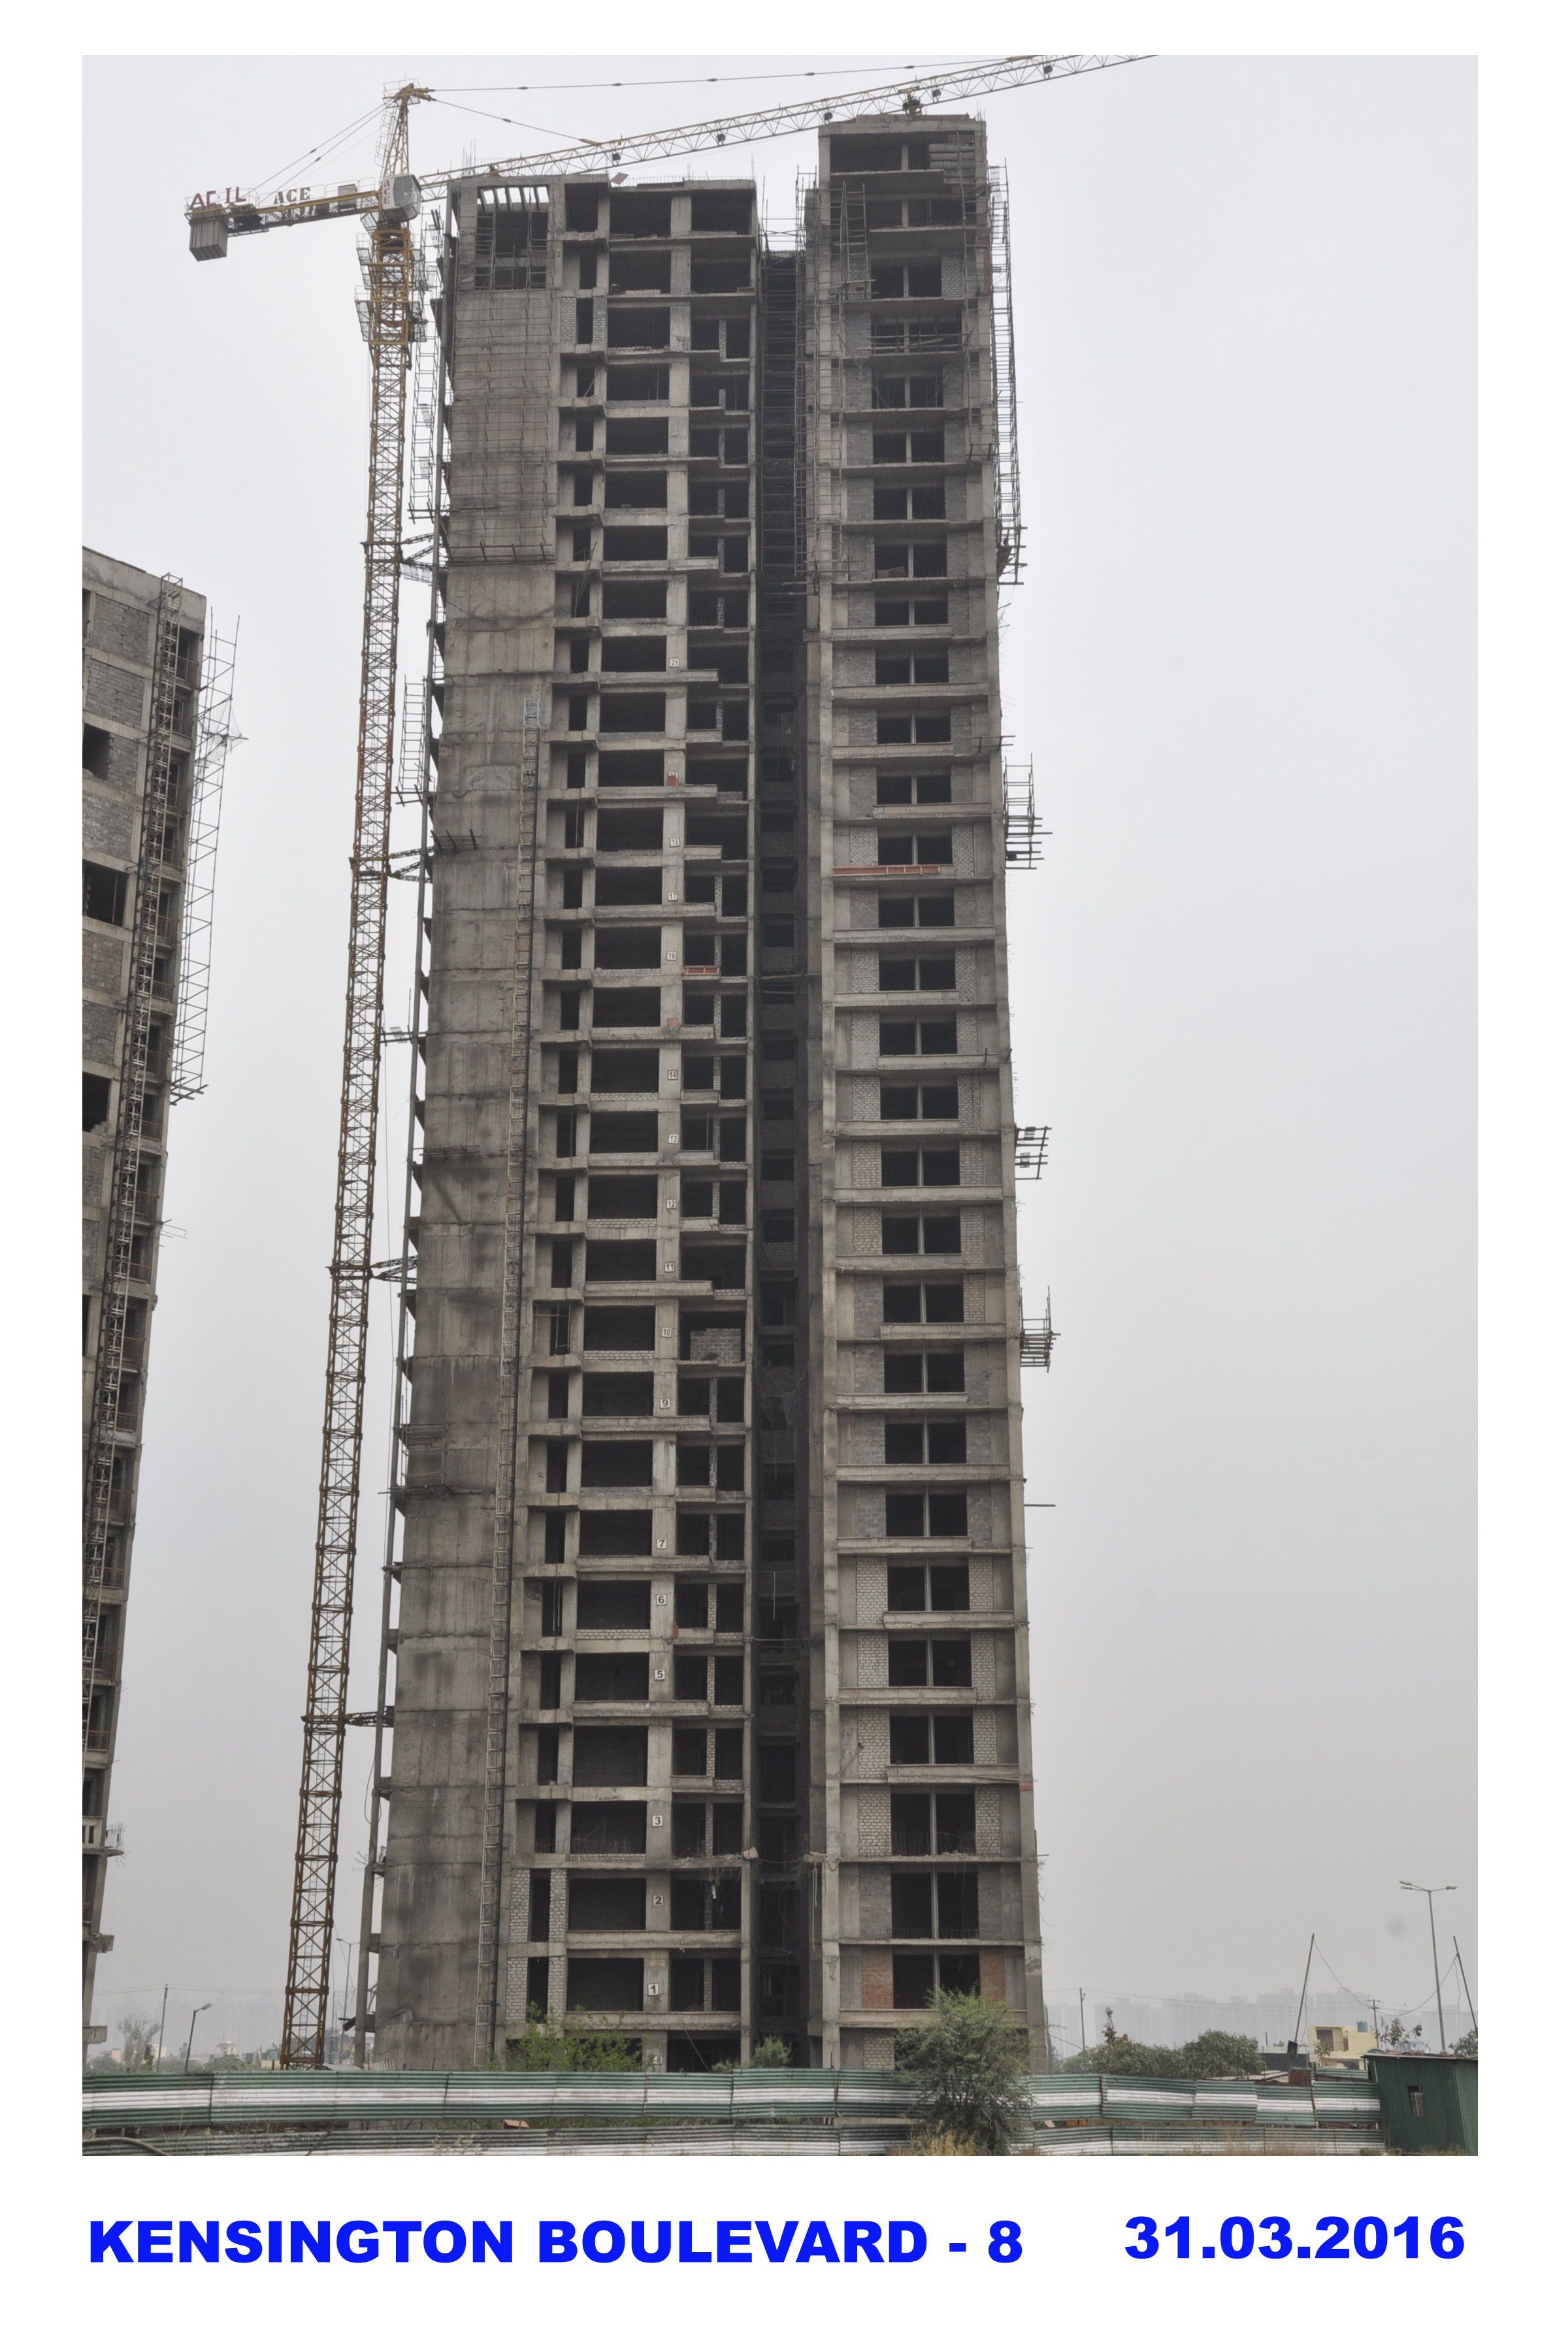 Kensington Boulevard Tower - 8